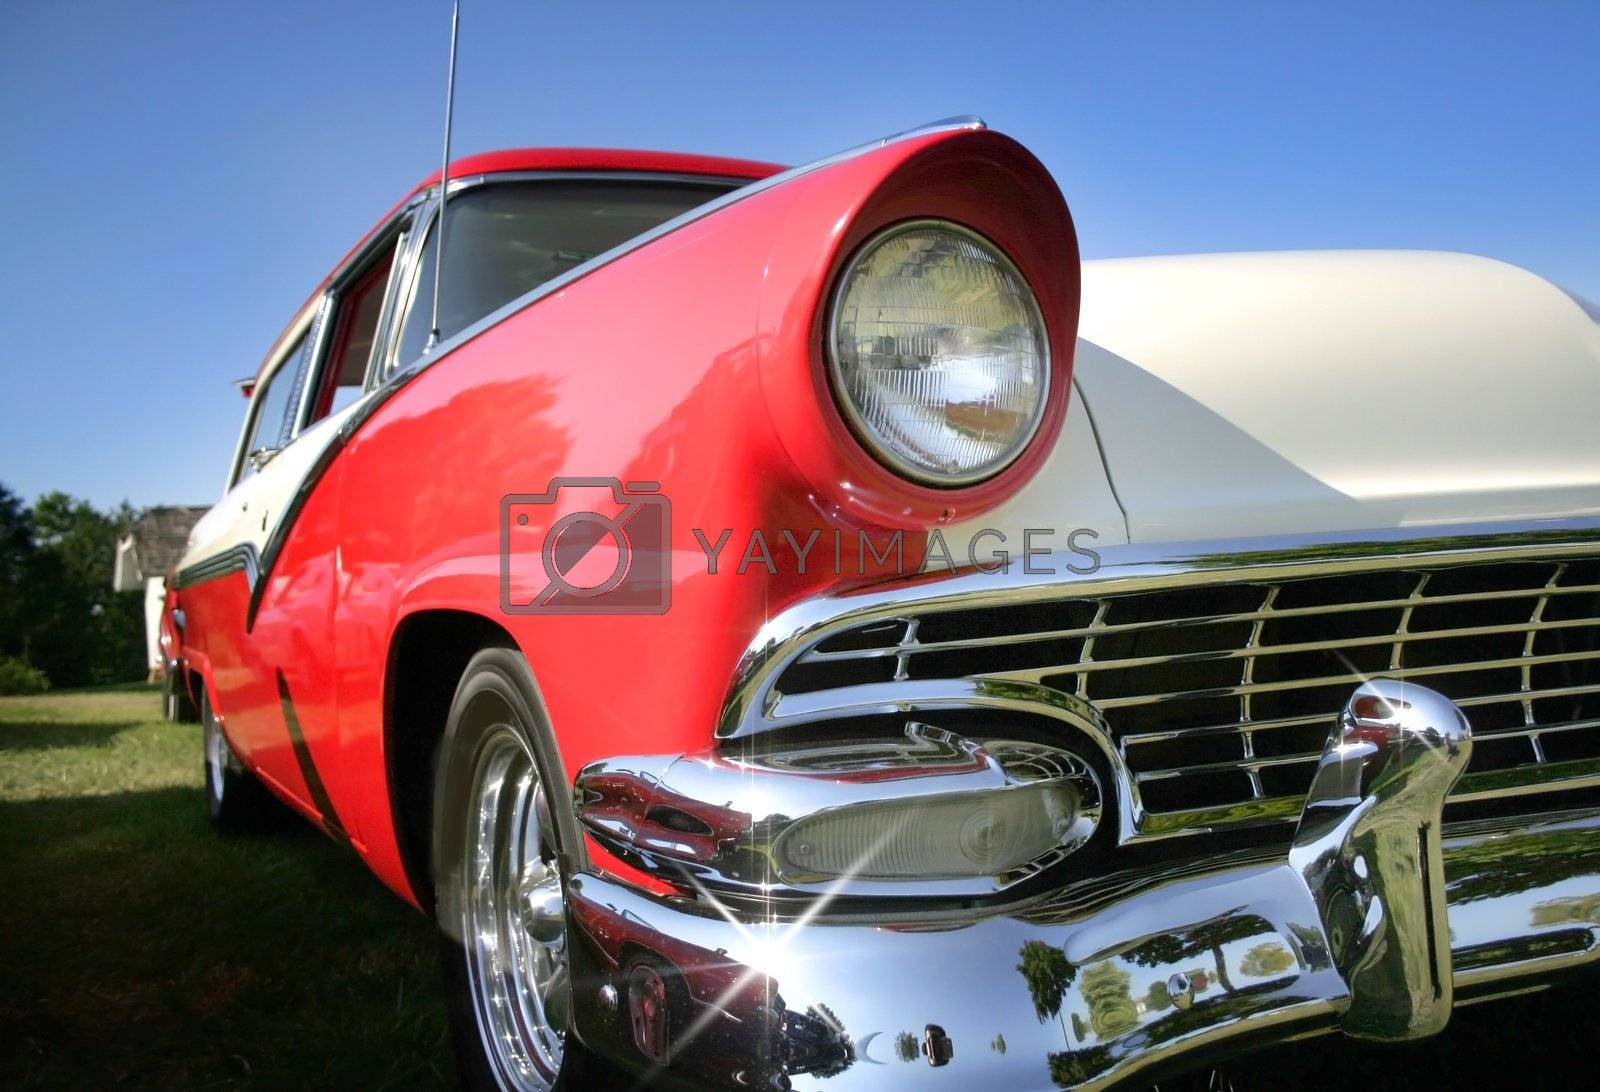 Sparkling Red and tan colored classic car